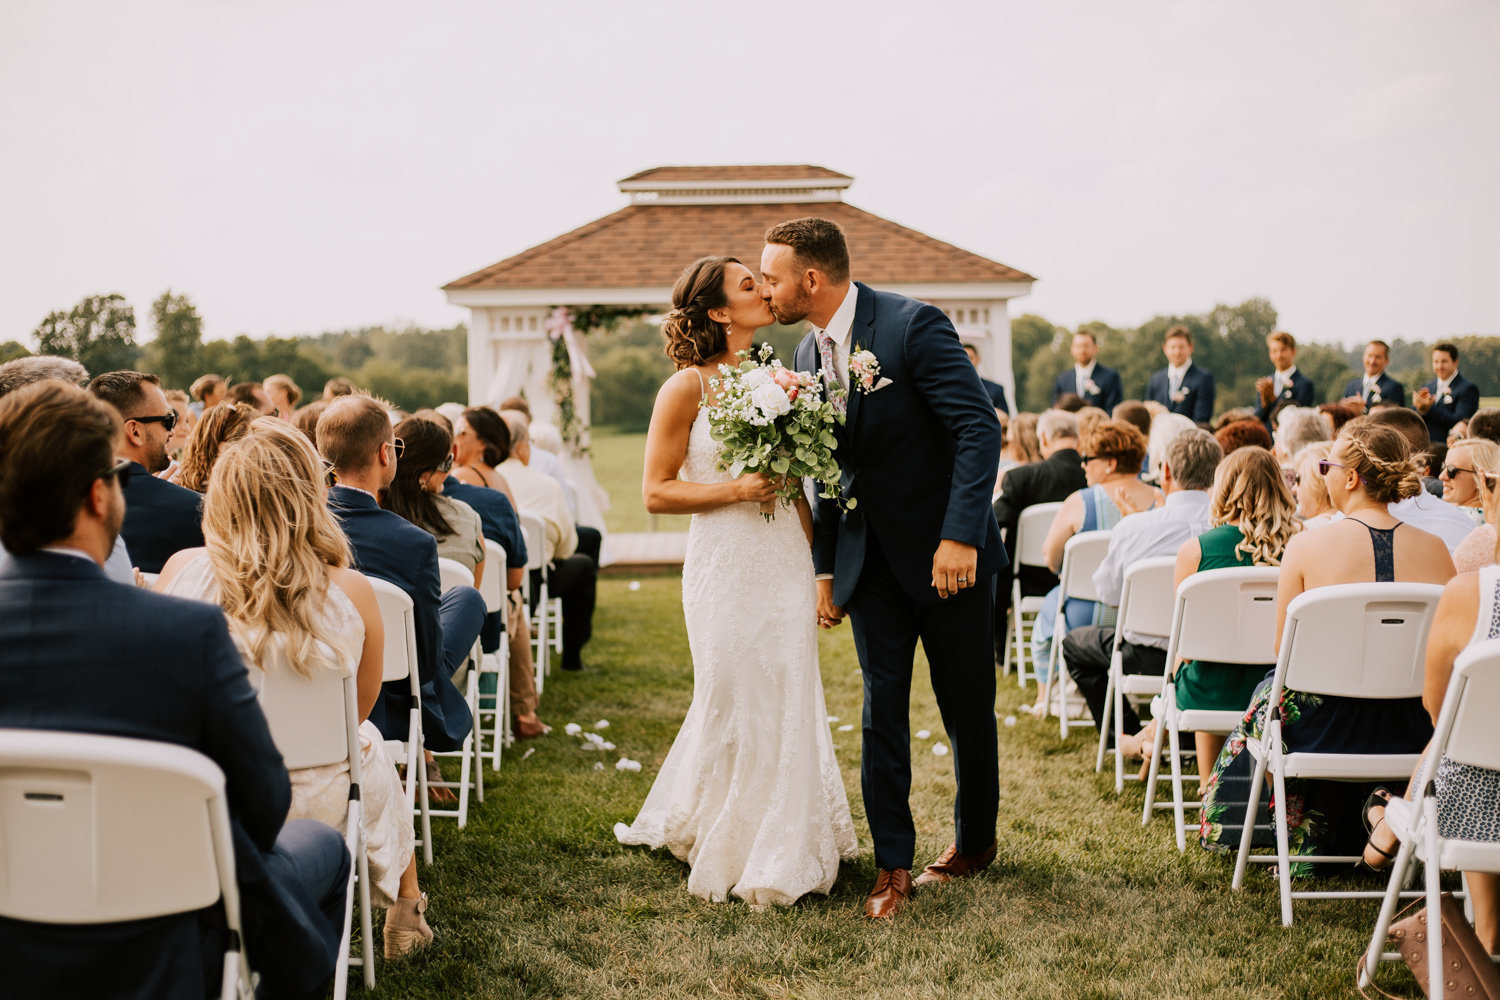 Country-Chic-Wedding-Meadow-Brook-Barn-Goshen-68